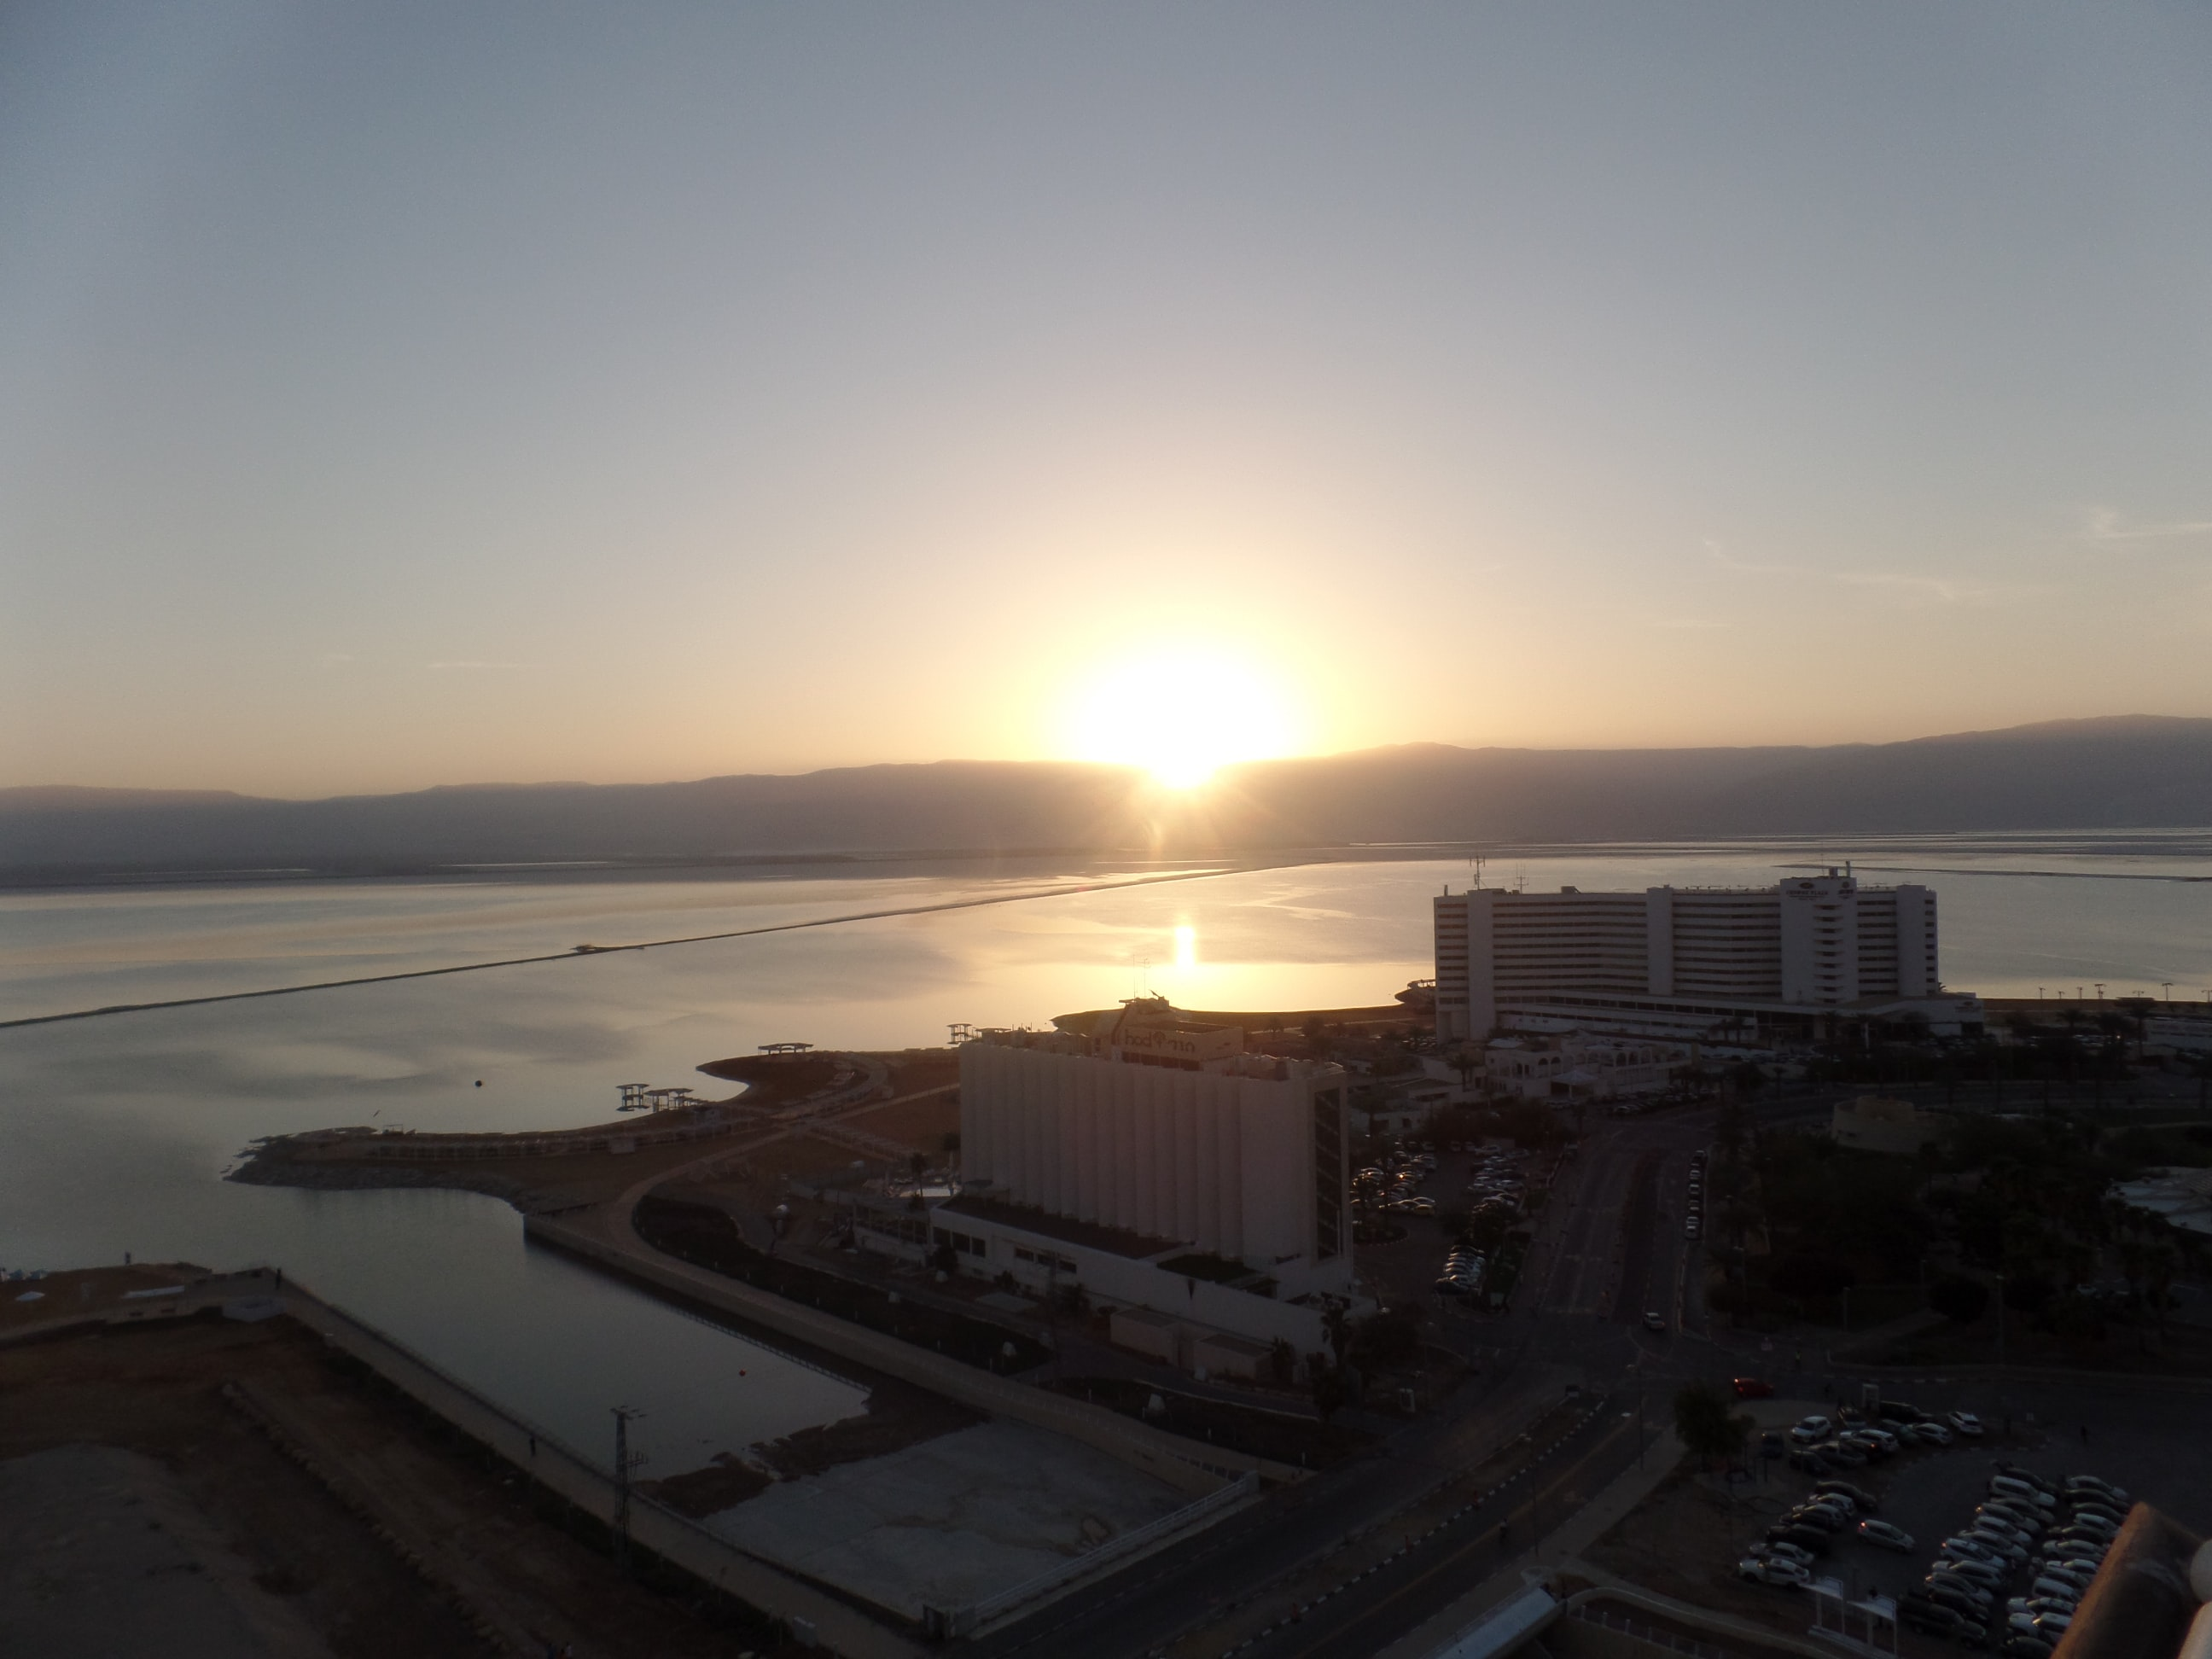 A sunset in the horizon, in a city in Israel.